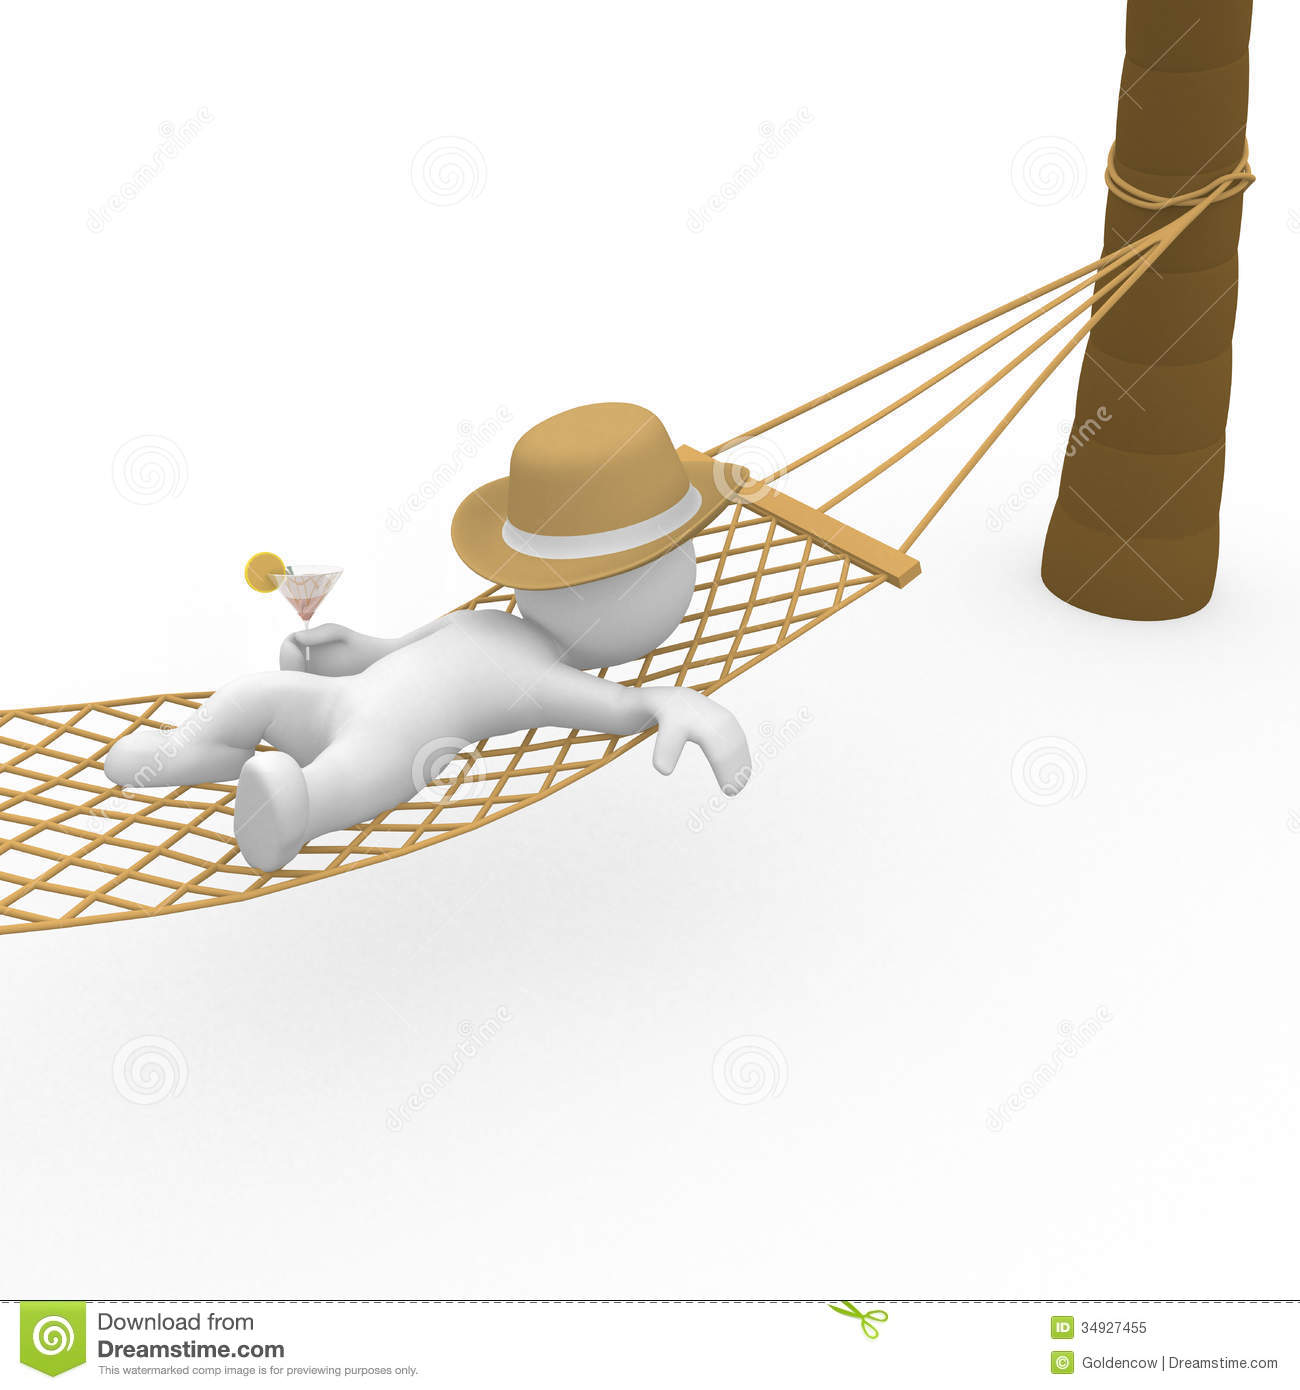 Chilling clipart #14